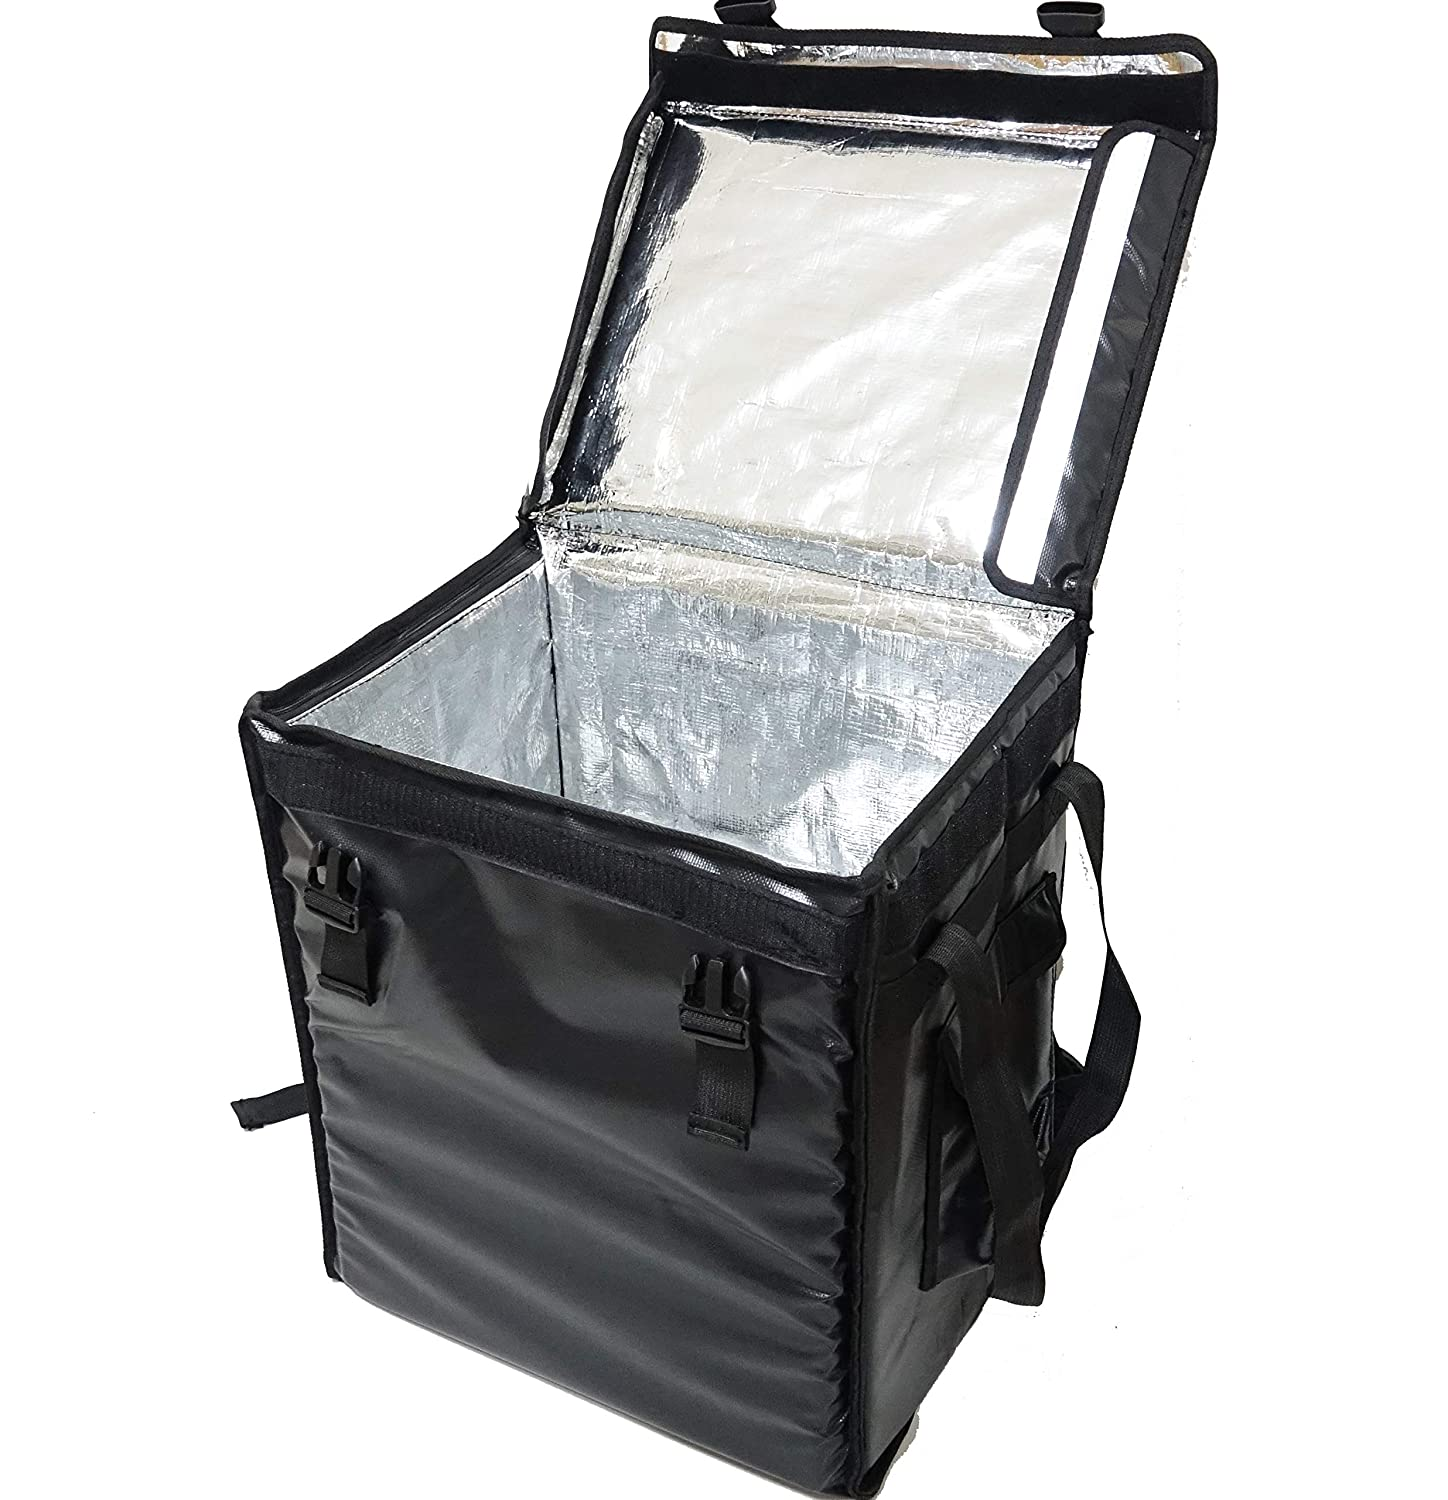 """PK-66V: Middle Food Delivery Backpack,16"""" L x 12"""" W x 18"""" H, Top Loading, Insulated Pizza Delivery Bag, Food Delivery Backpack, Thermal Delivery Bag, Pizza Delivery Backpack, Matte Waterproof"""